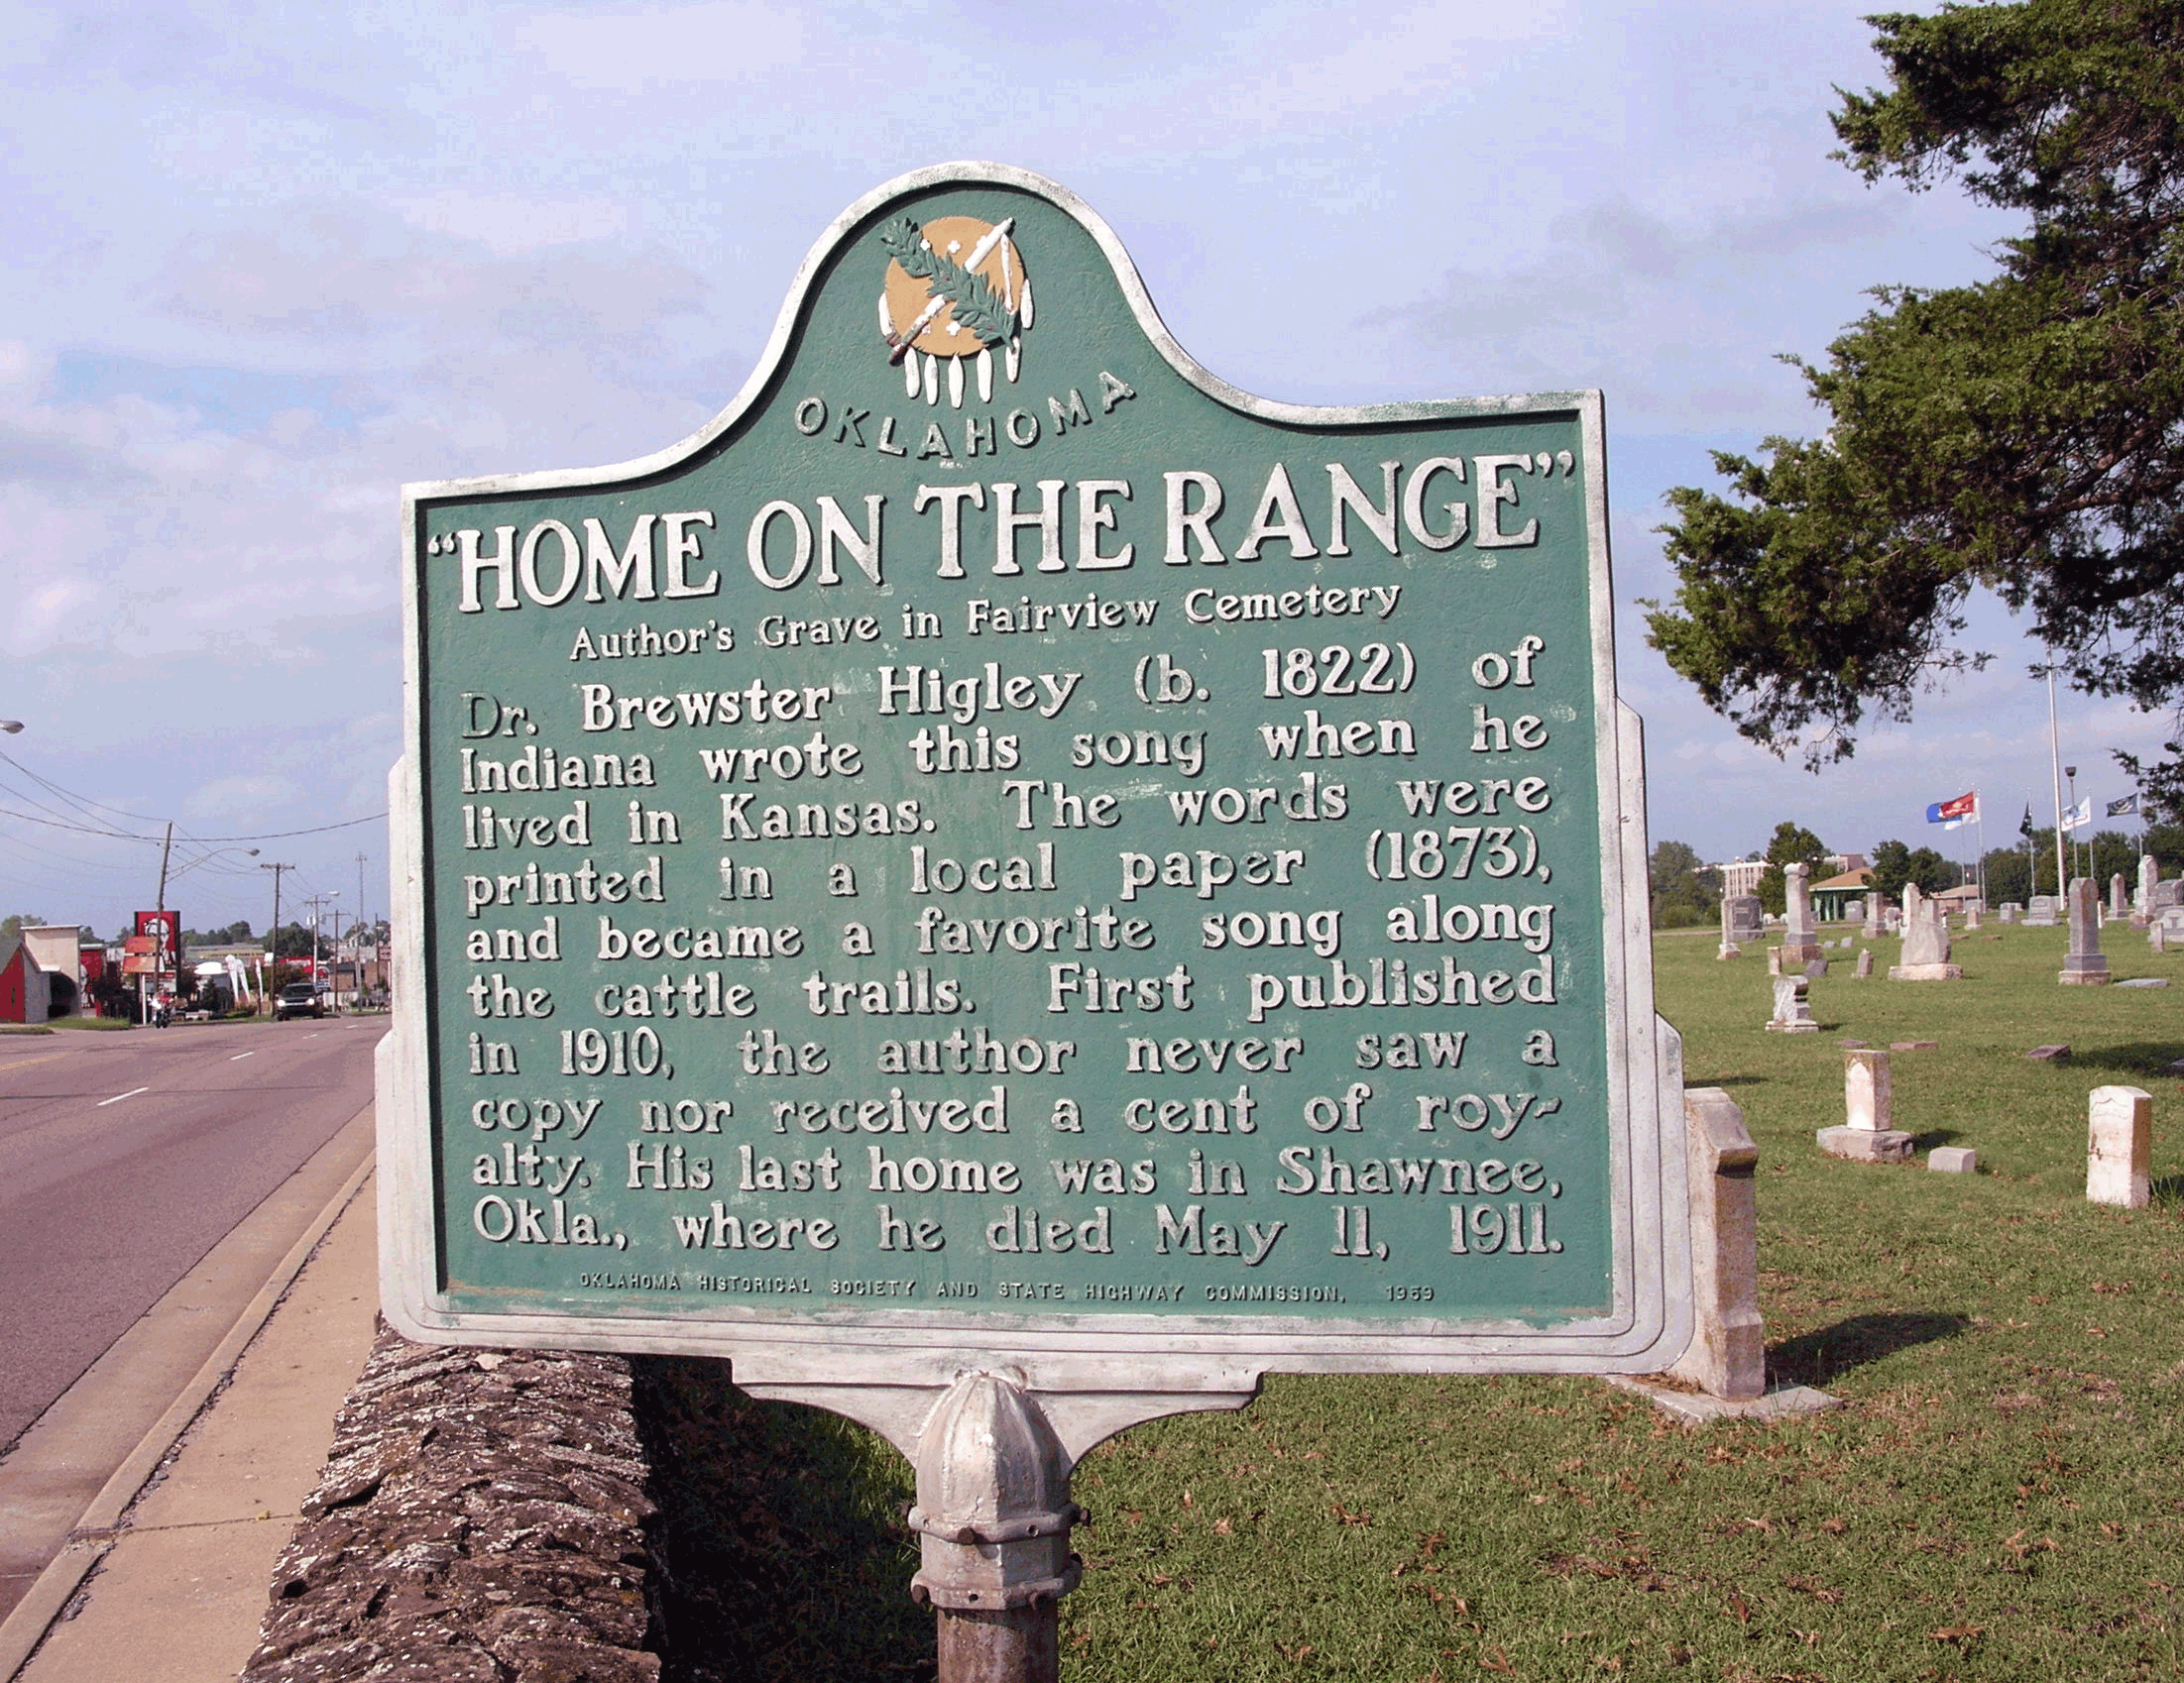 Exploring Oklahoma History: Home on the Range